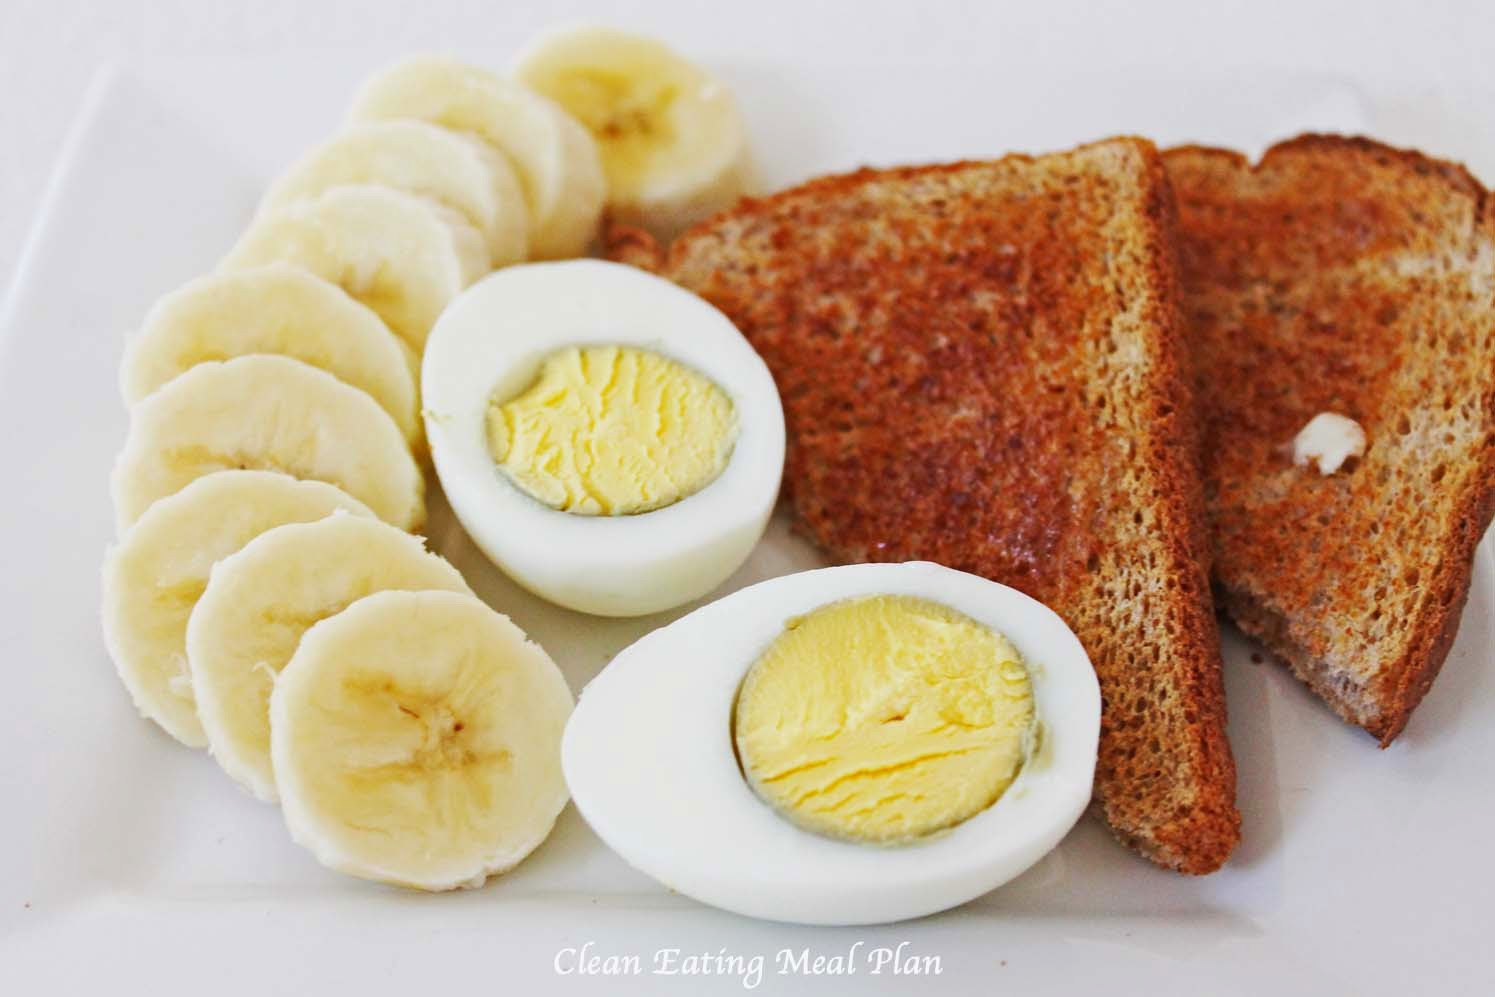 Healthy Egg Breakfast Weight Loss  How to Lose Weight in a Week the Healthy Way